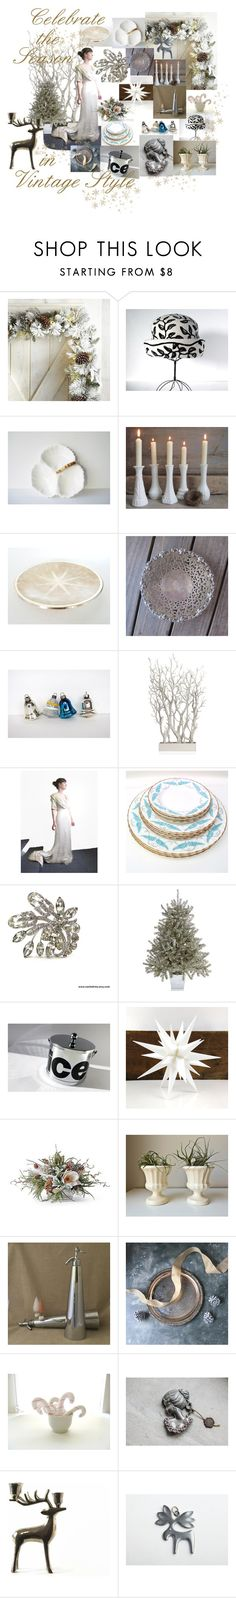 """""""Celebrate the Season"""" by vintageandmain ❤ liked on Polyvore featuring interior, interiors, interior design, home, home decor, interior decorating, Pier 1 Imports, Aynsley, WMF and Royal Worcester"""